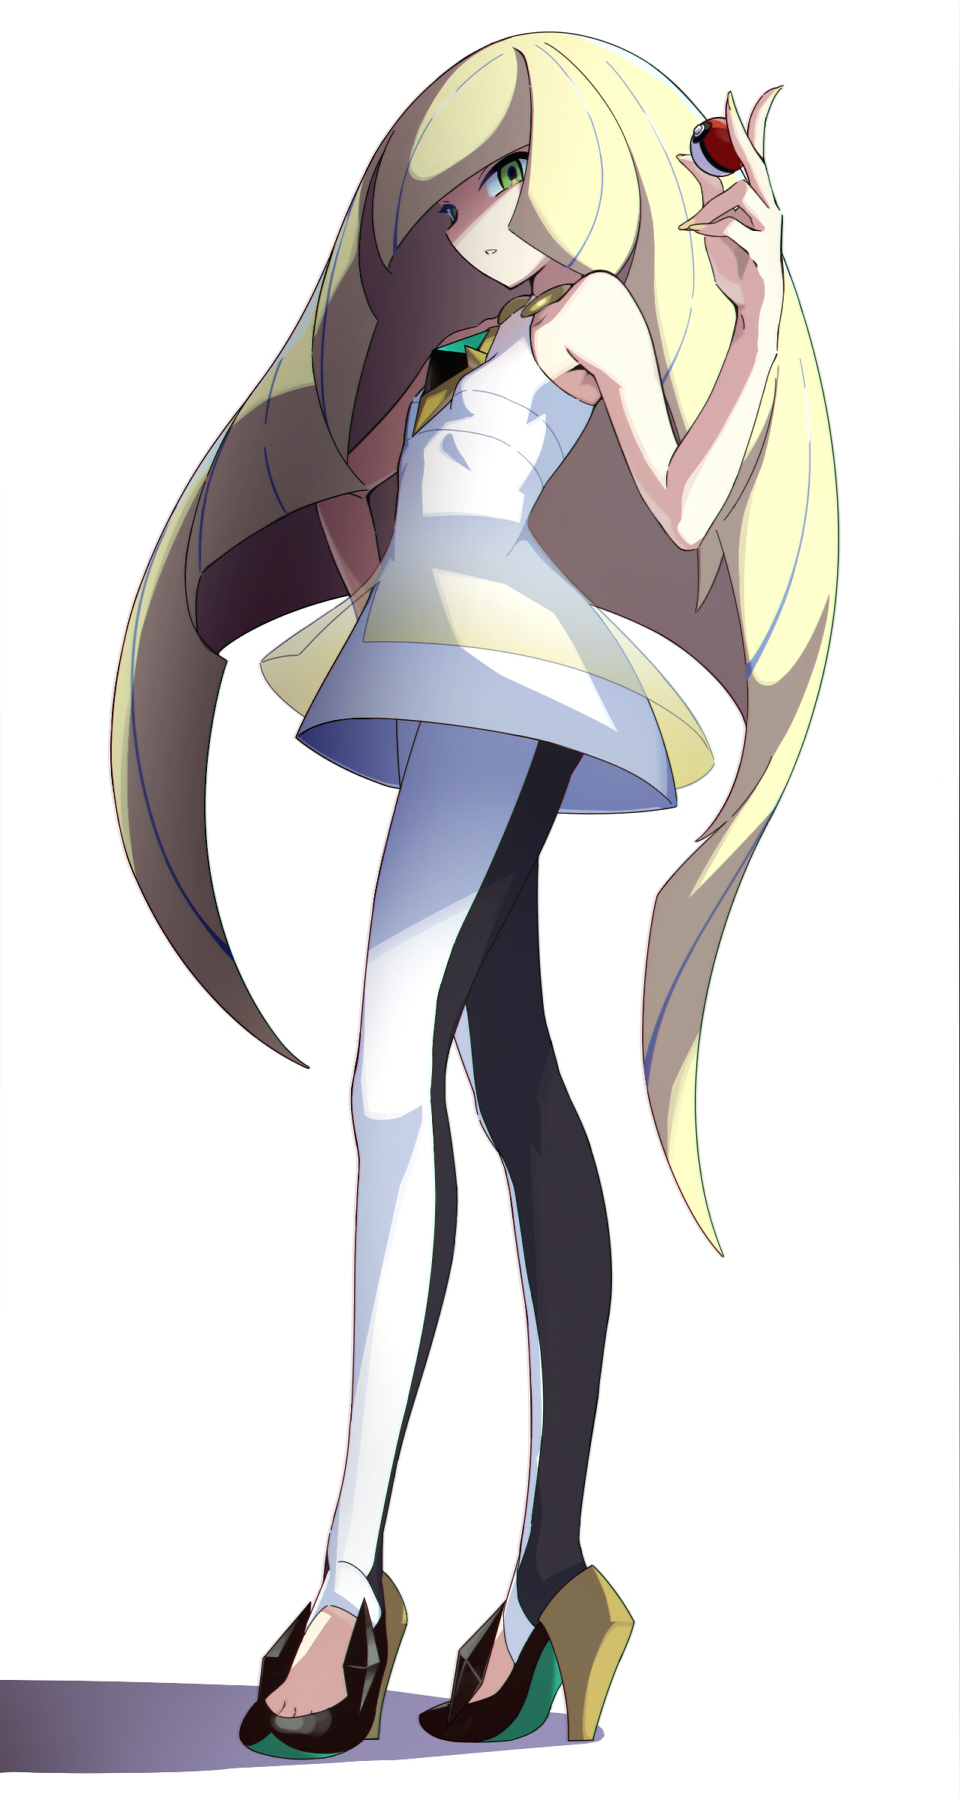 1girl bare_arms bare_shoulders black_legwear blonde_hair dress female full_body gem green_eyes hand_on_hip high_heels highres leggings long_hair looking_at_viewer lusamine_(pokemon) nail_polish parted_lips poke_ball pokemon pokemon_(game) pokemon_sm shaded_face short_dress sleeveless sleeveless_dress solo suke_(158628) very_long_hair white_legwear yellow_nails